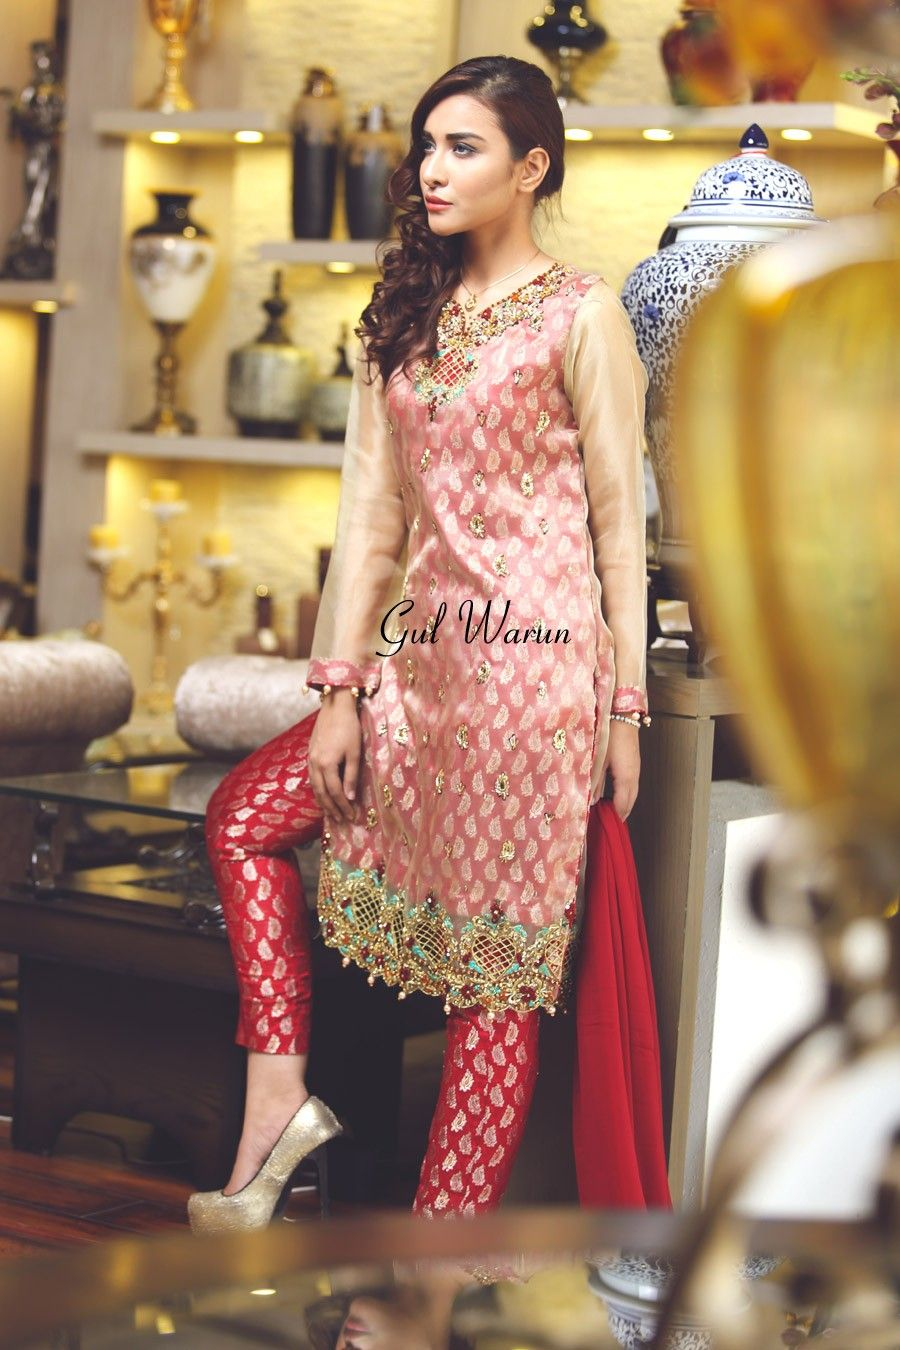 fc08ae53647e Pakistani Designer Dresses - Lowest Prices - Cut Work Semi formal Dress by  Gul Warun - Dresses - Latest Pakistani Fashion